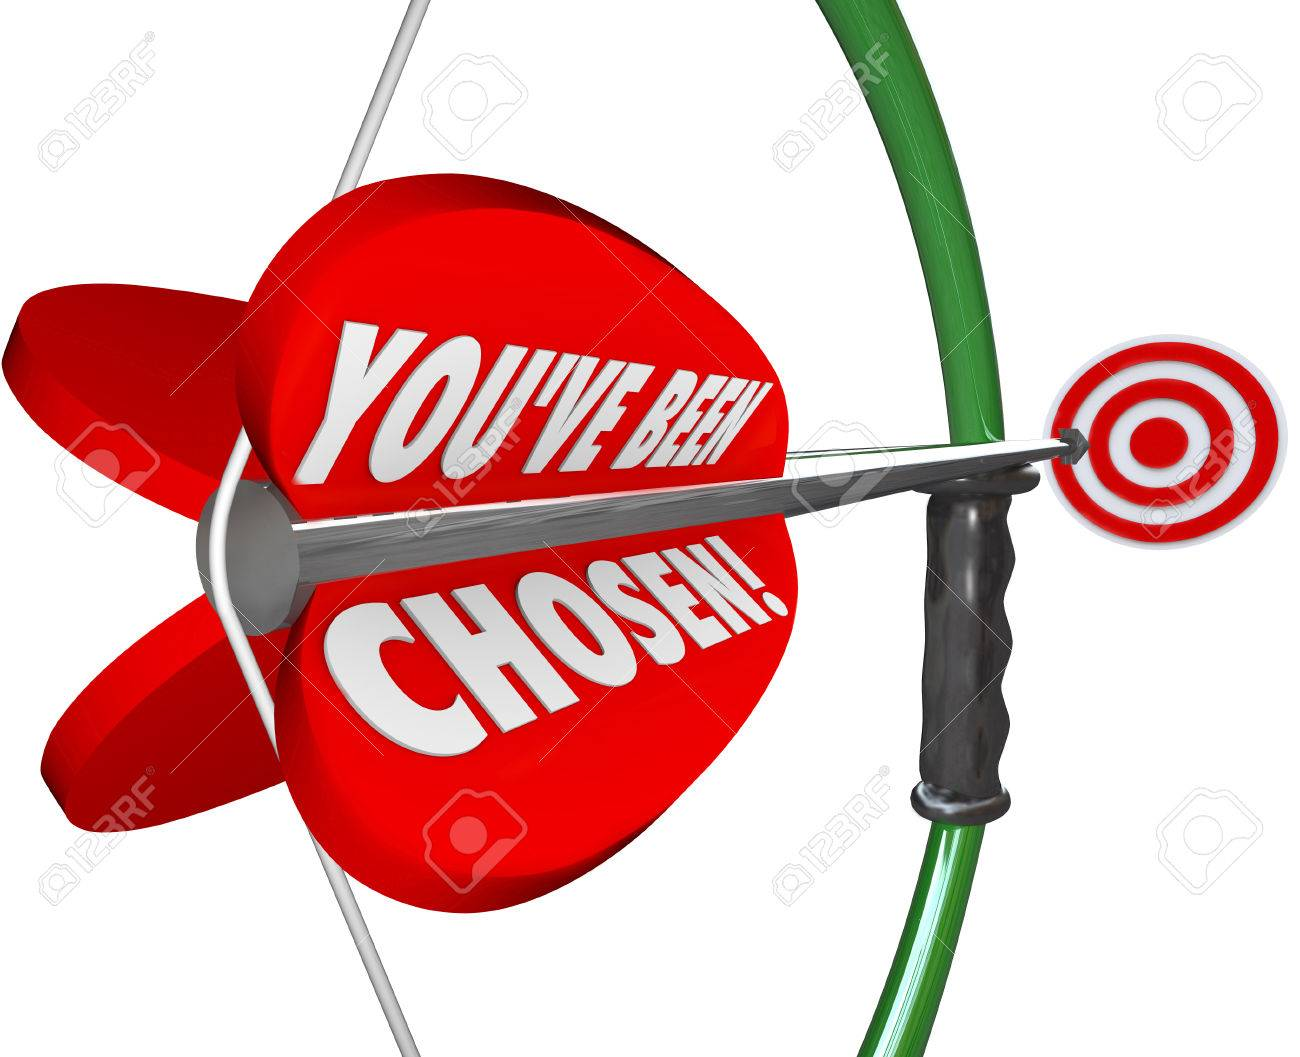 you ve been chosen words on a 3d bow and arrow aiming at the stock photo you ve been chosen words on a 3d bow and arrow aiming at the selected target in a game or competition choosing best candidate for prize or job